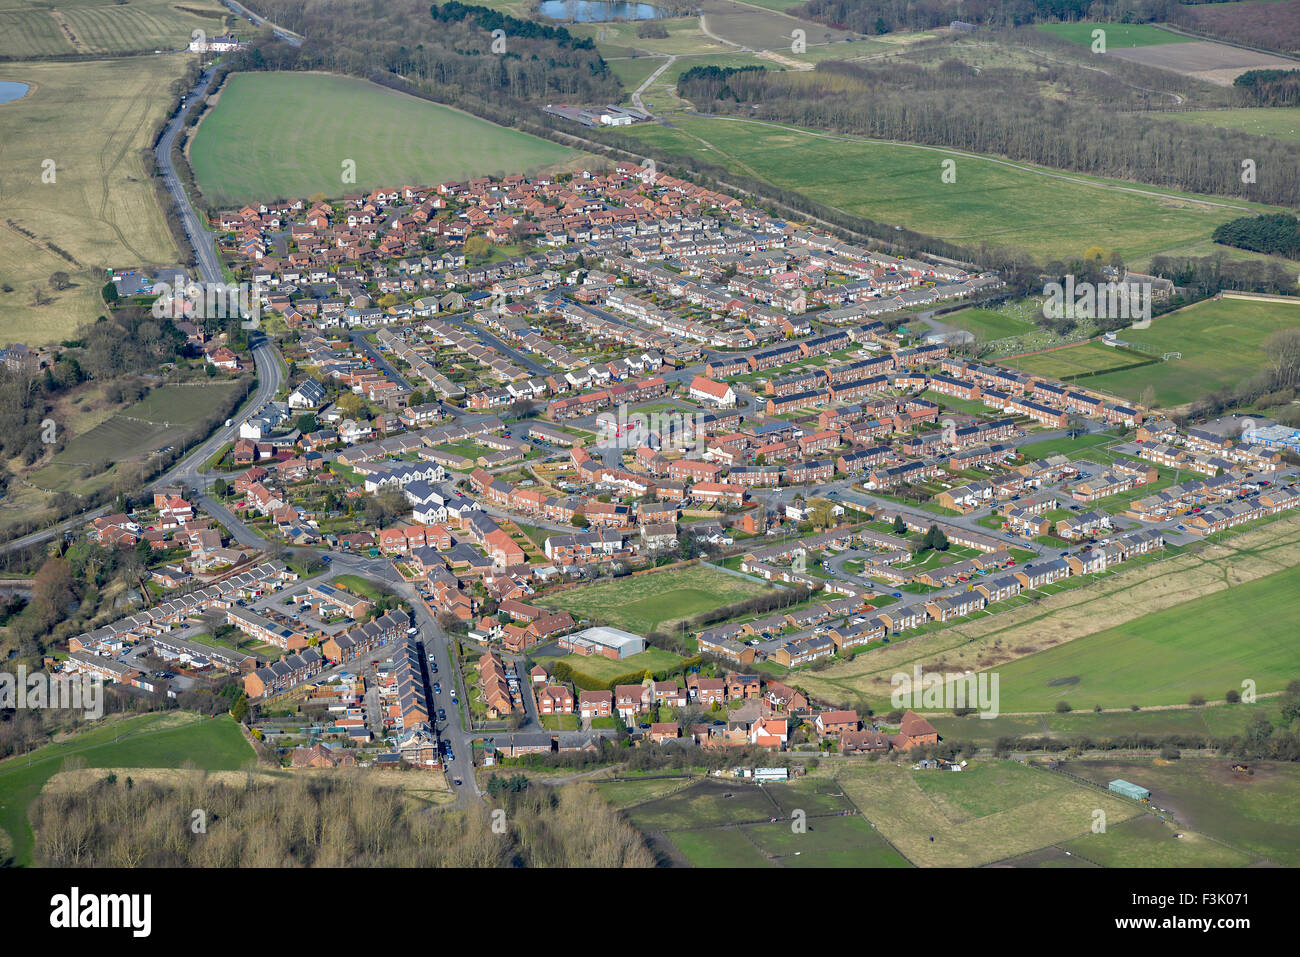 Aerial photography of Bournmoor, Tyne and Wear - Stock Image